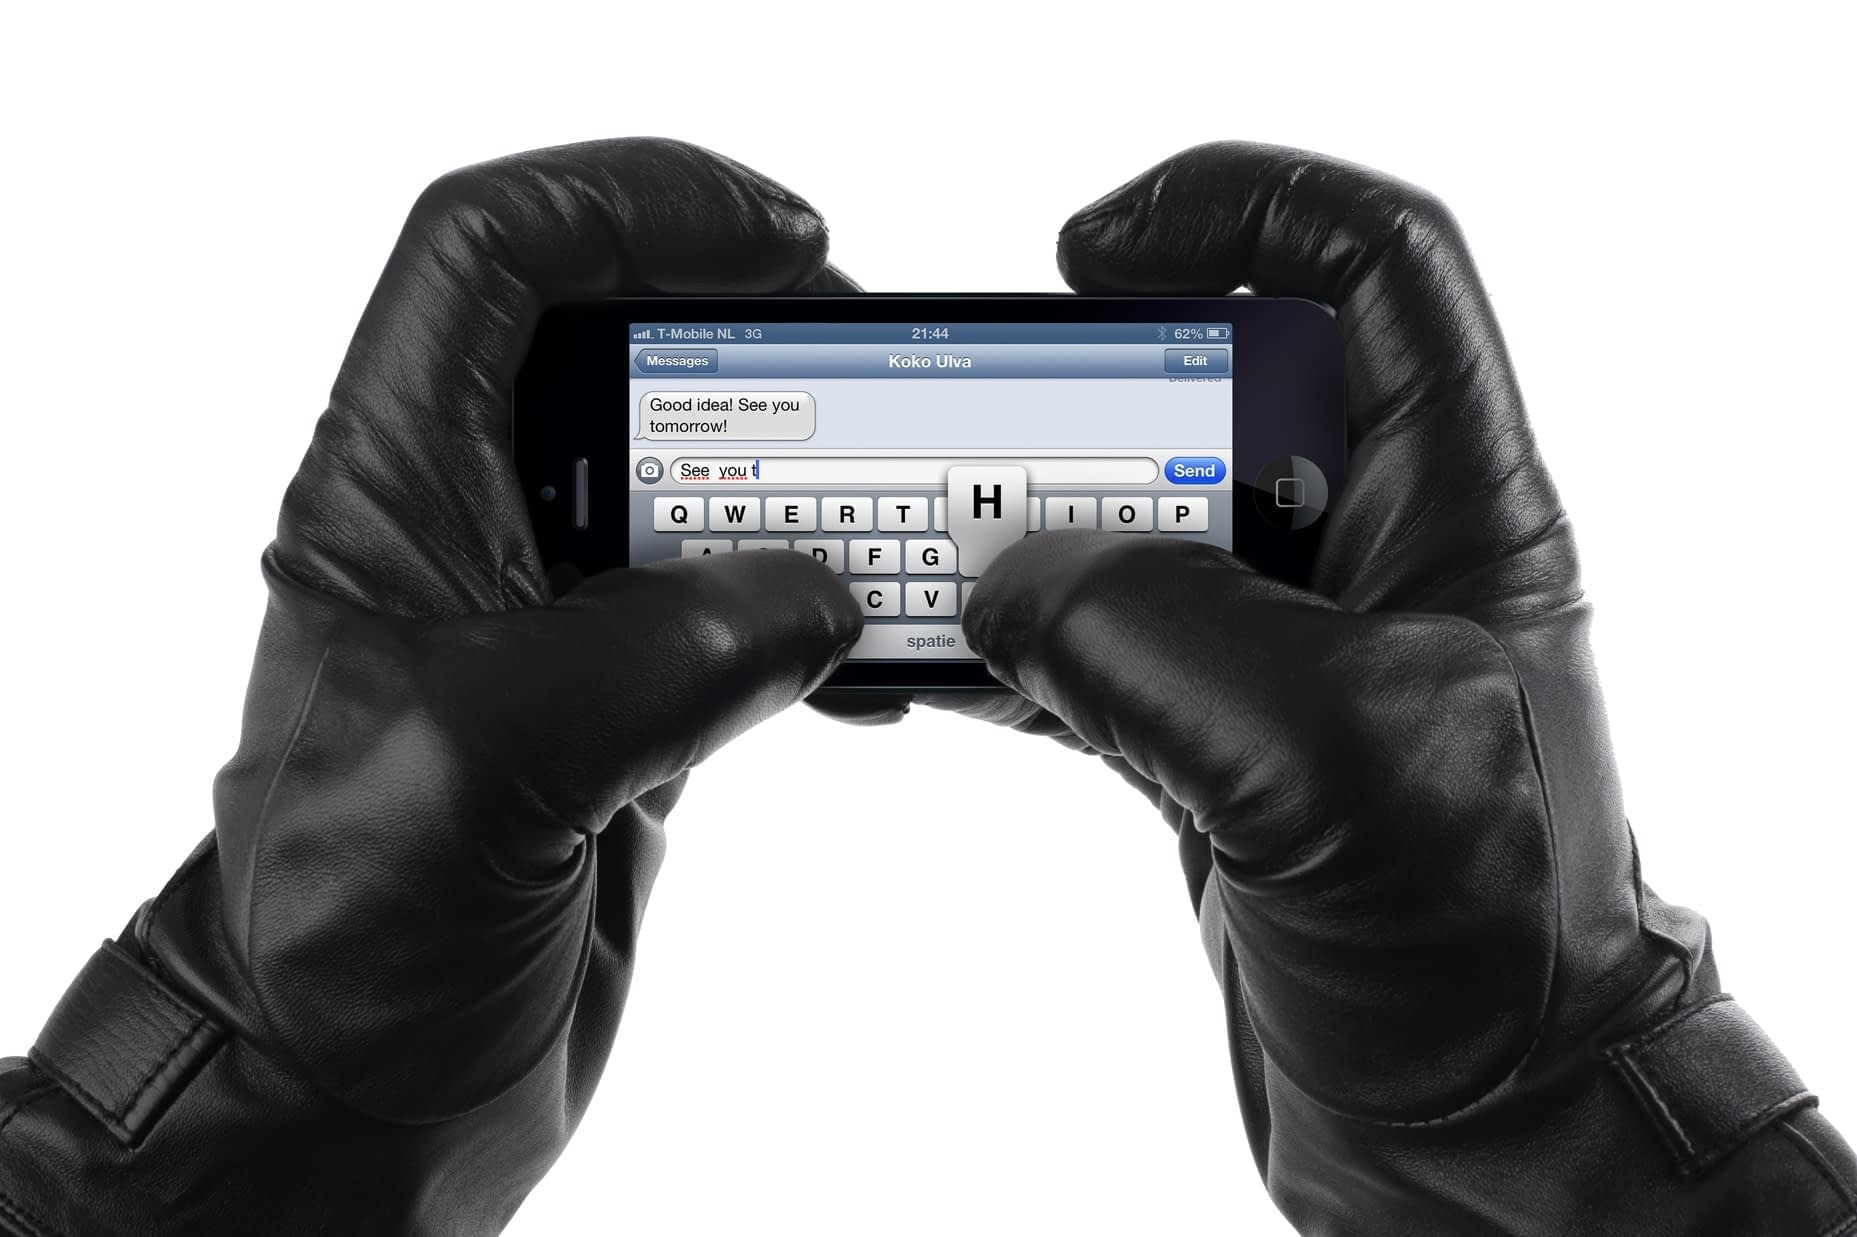 leather touchscreen gloves by mujjo b IMG 0142